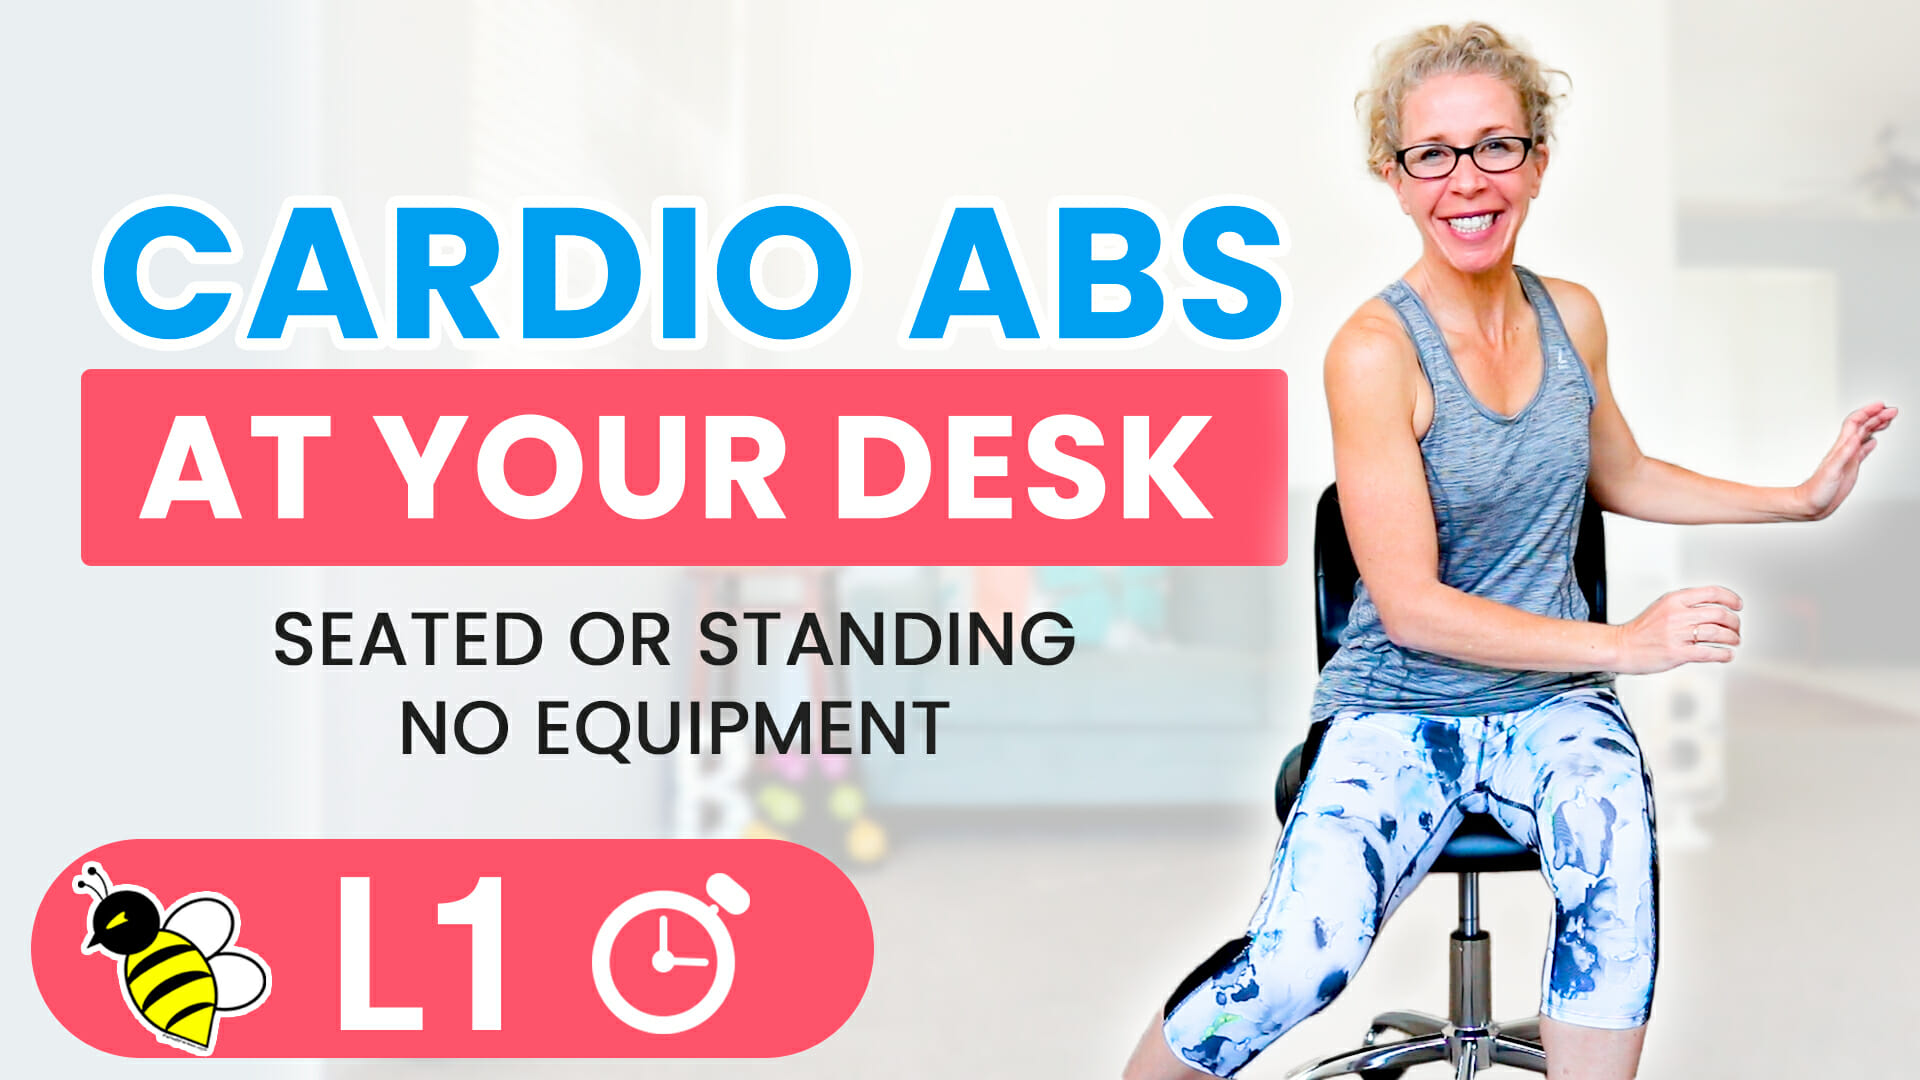 CARDIO ABS at your DESK 5-Minute Friday FIX workout